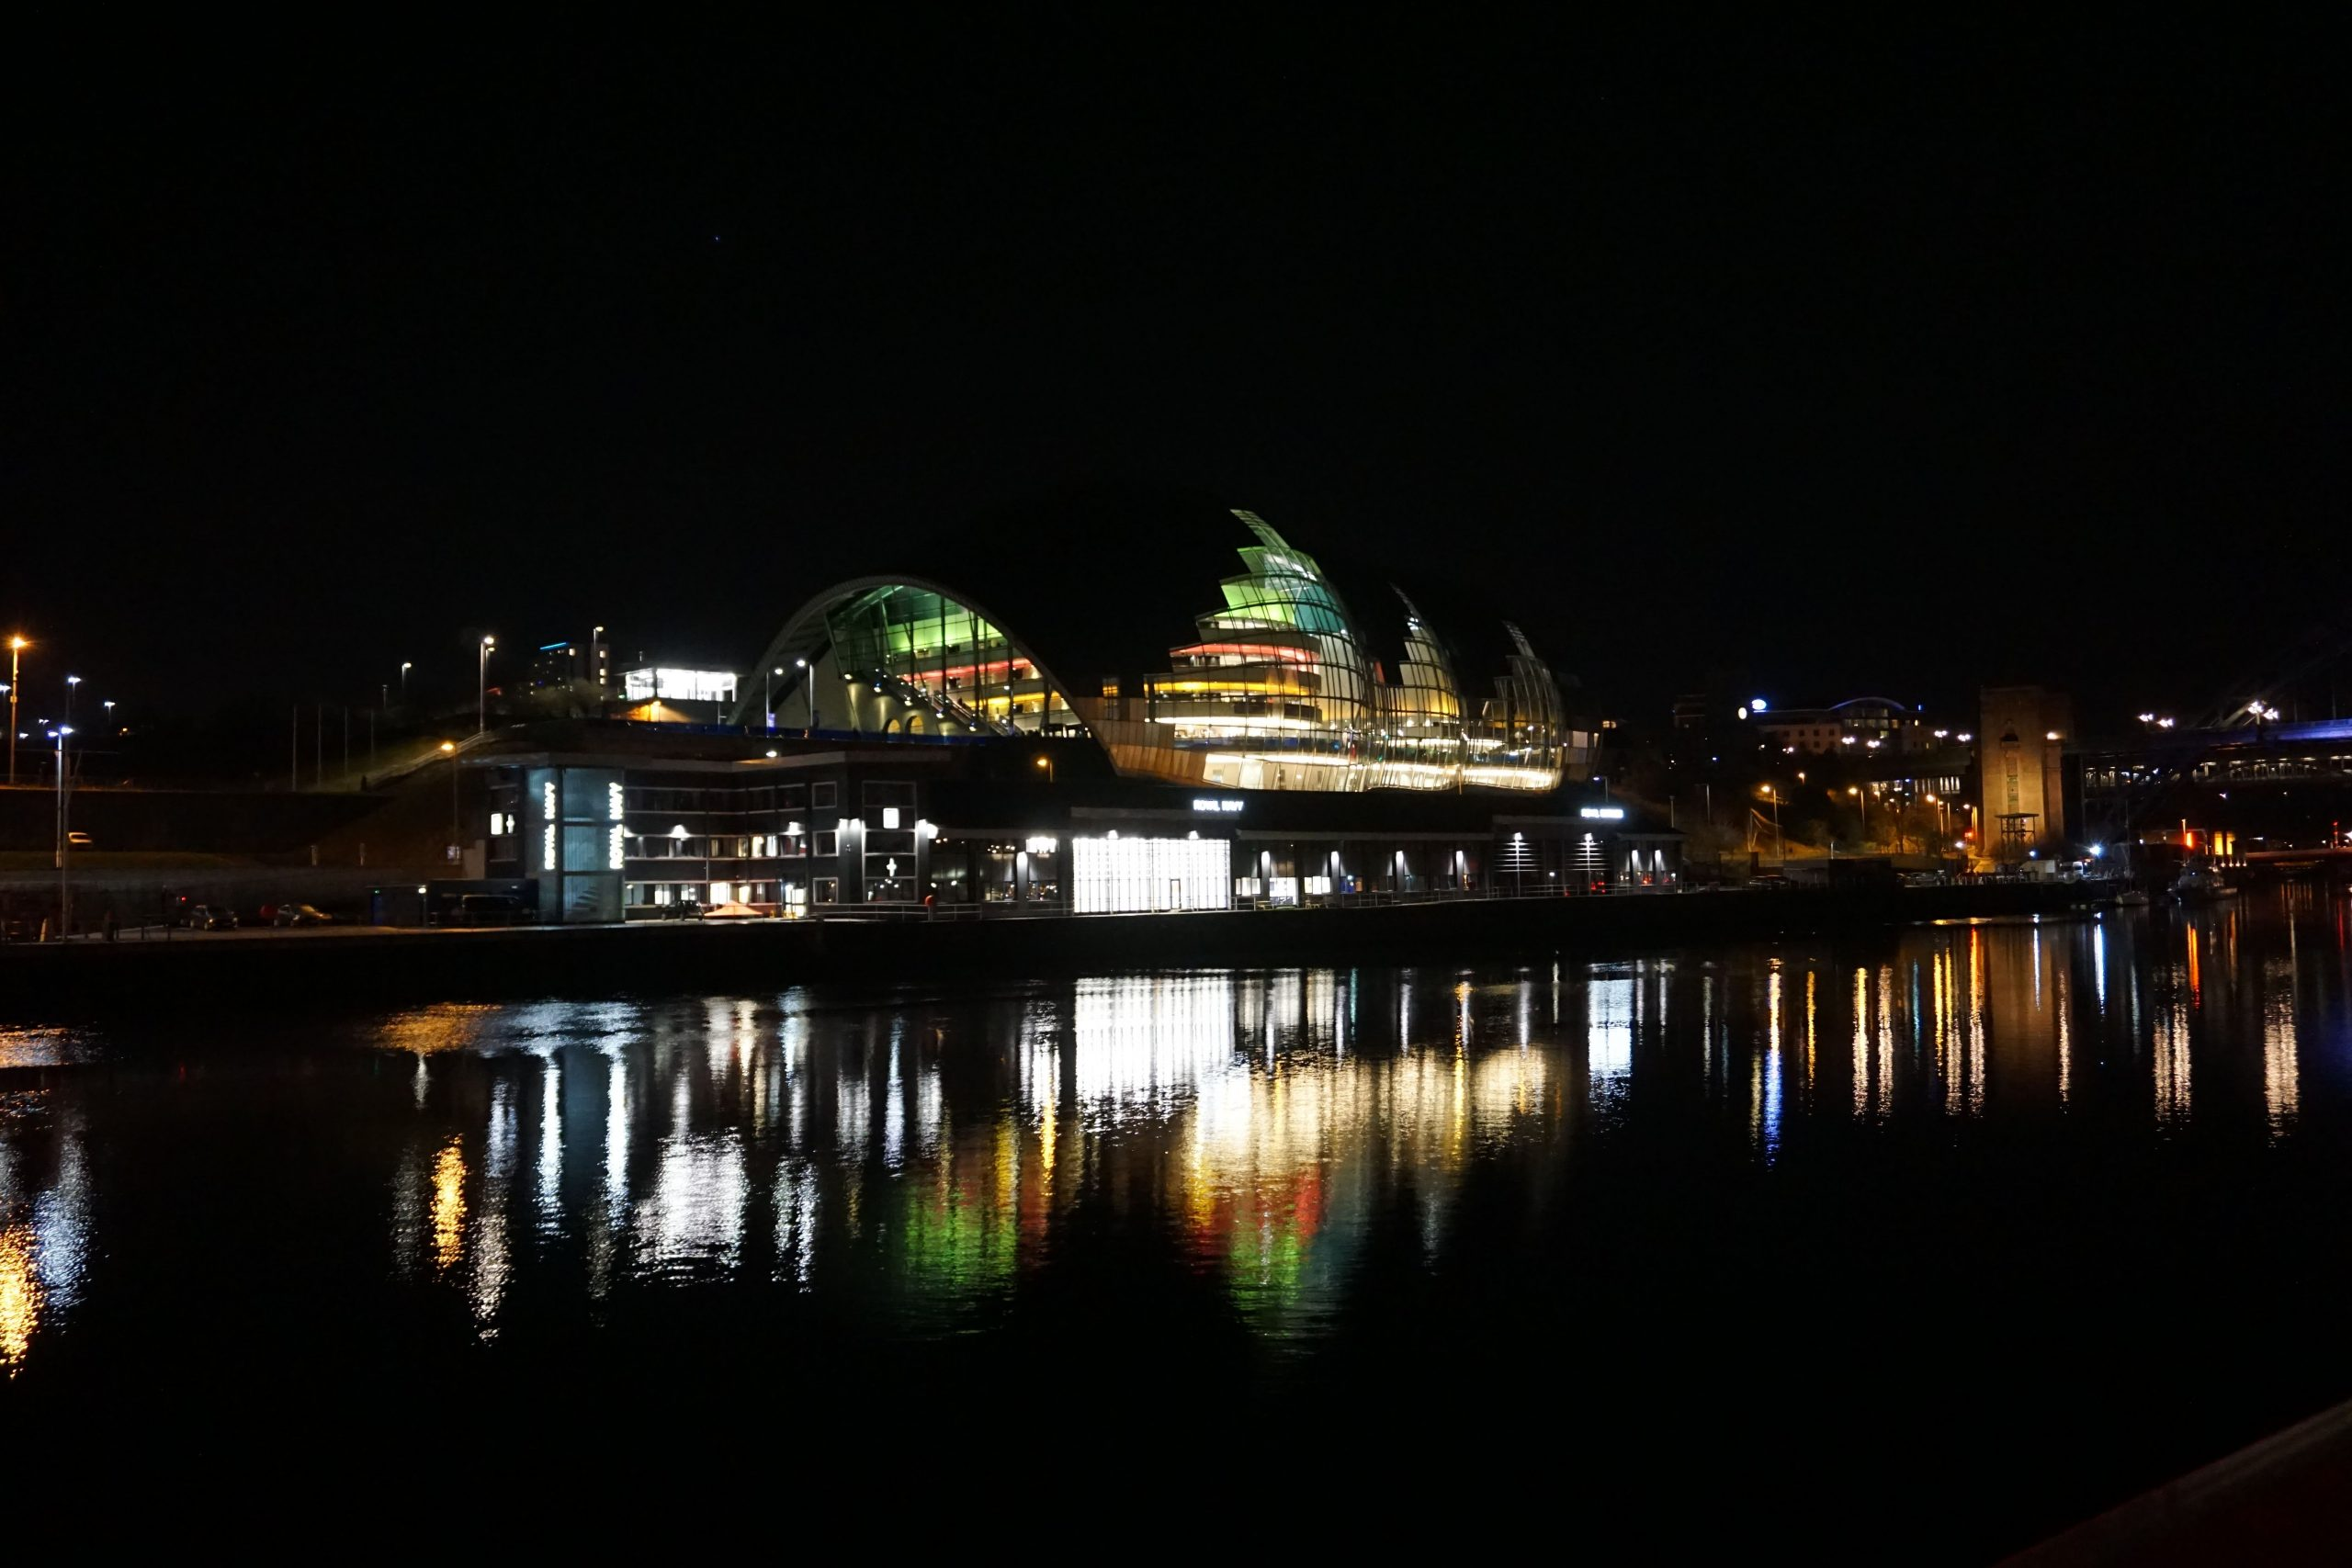 Gateshead Sage building from across the river, the colored lights are reflected in the river Tyne.